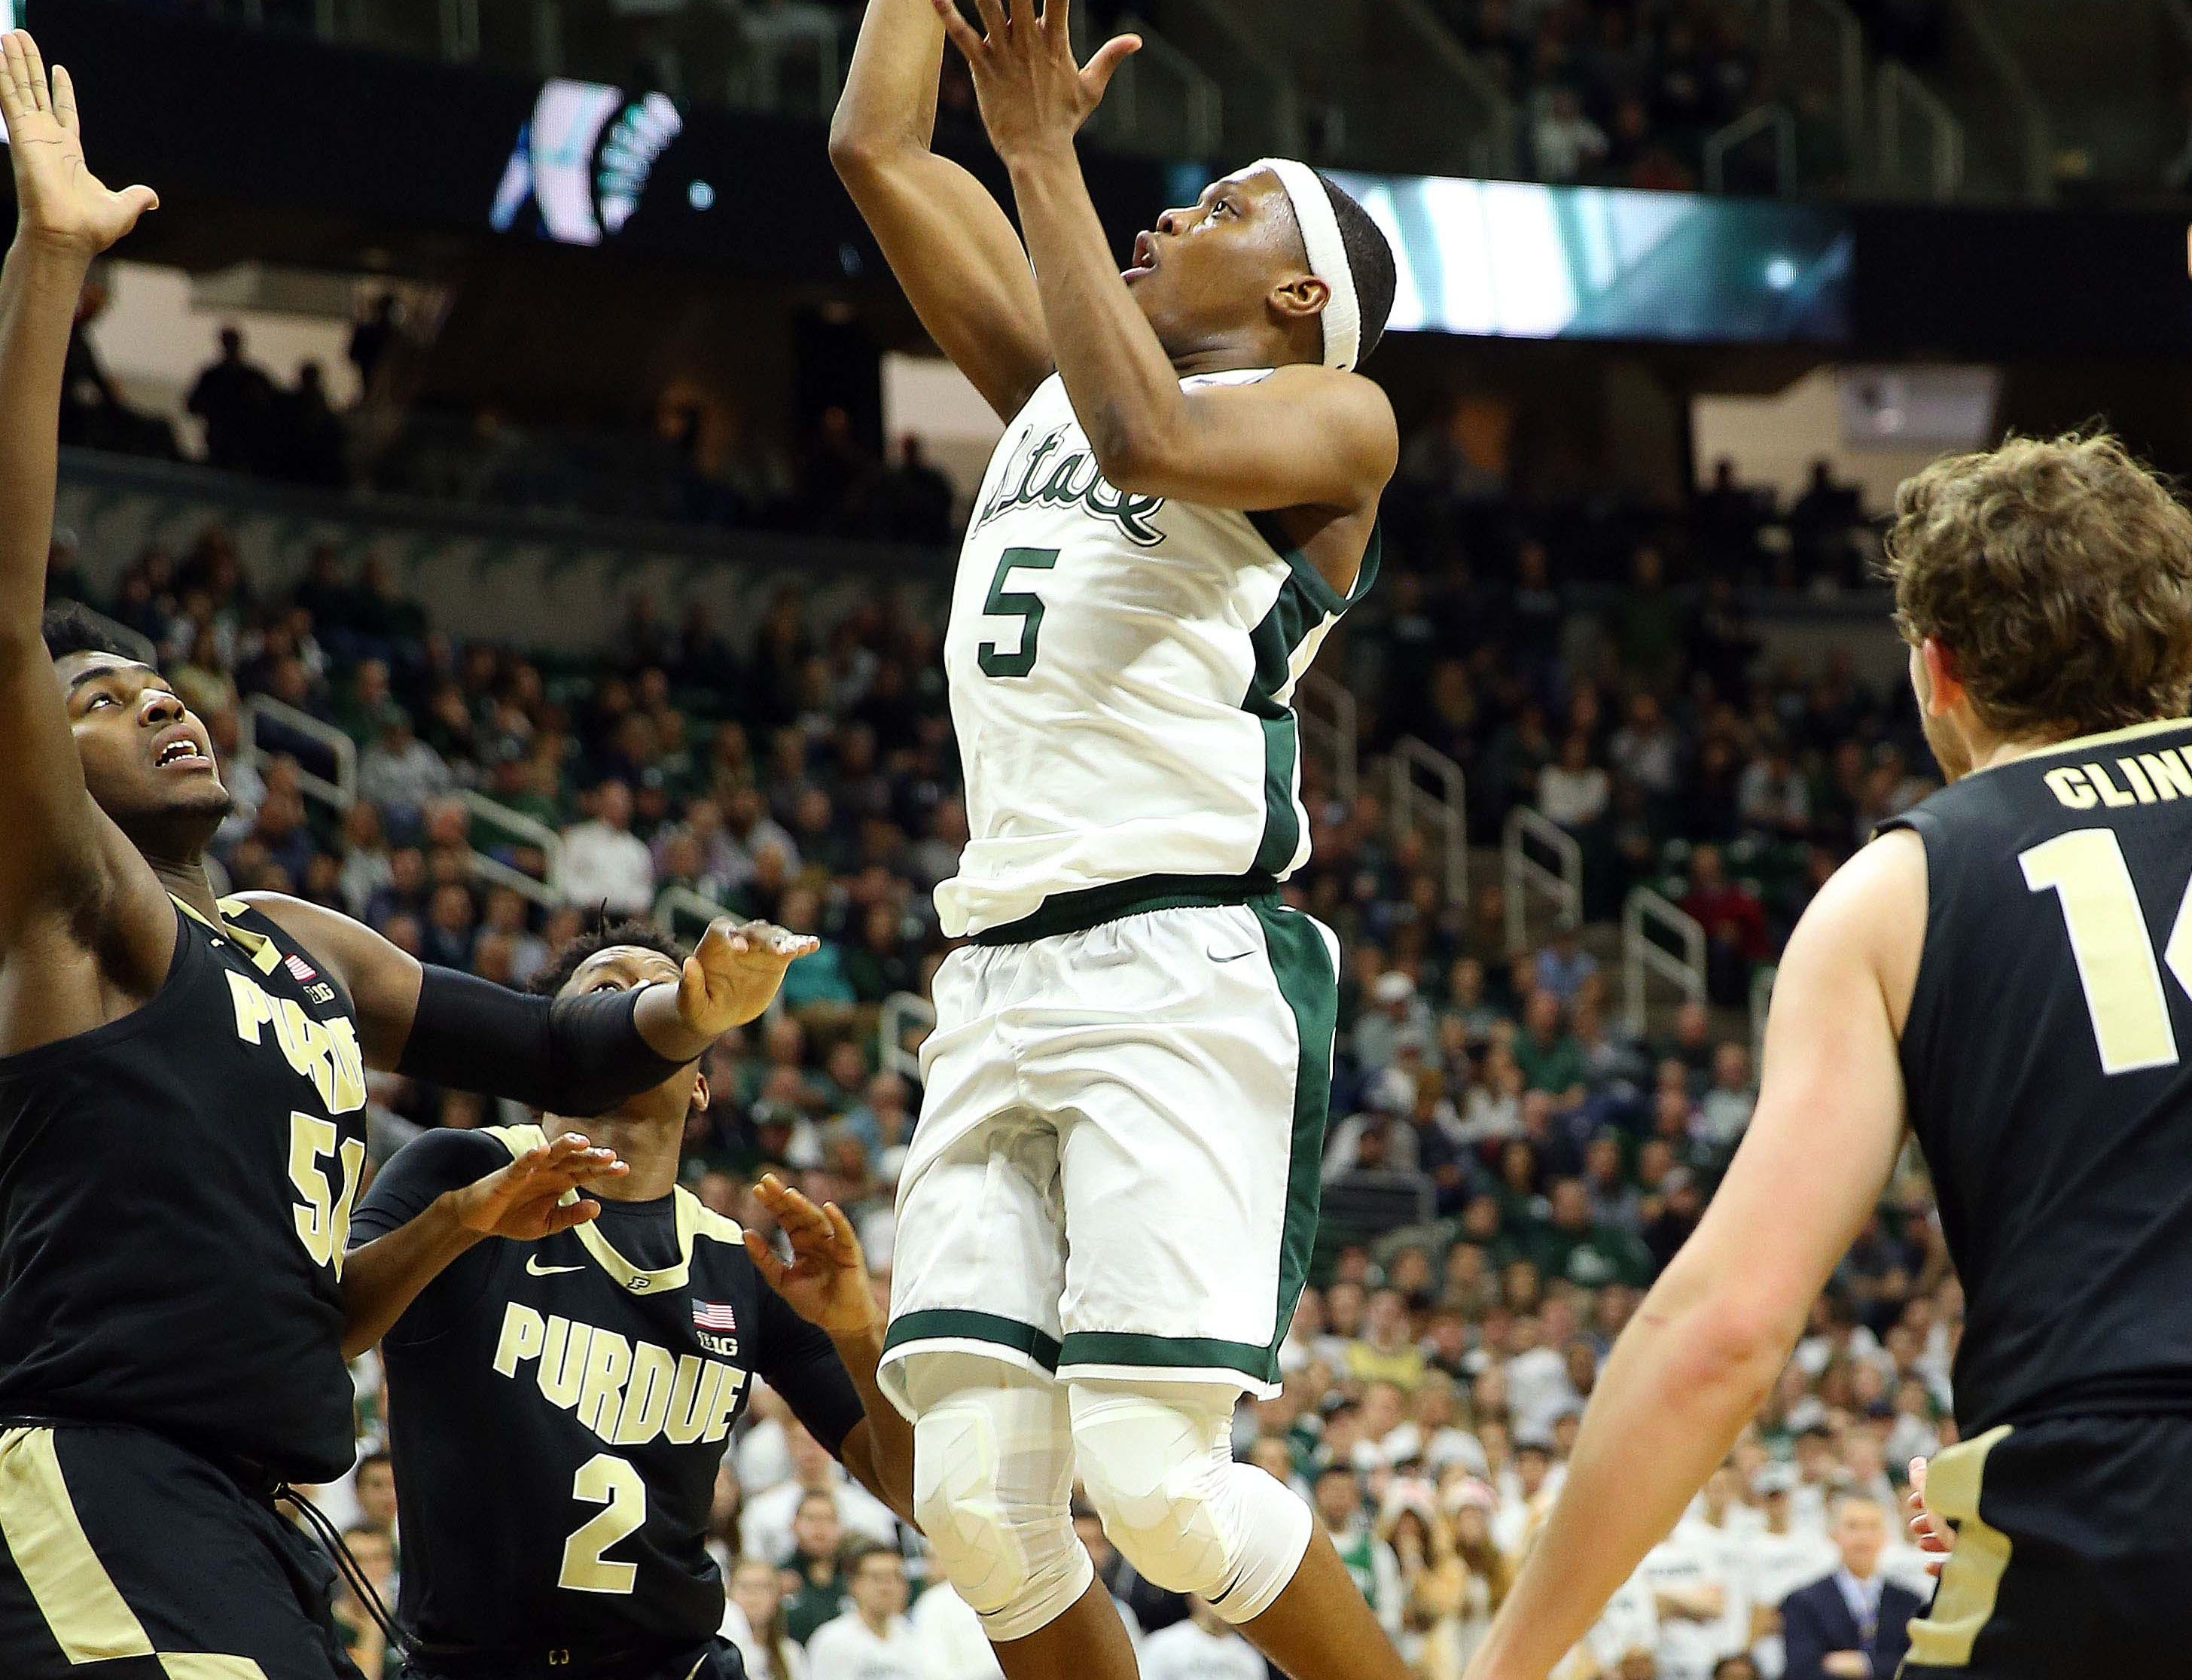 Jan 8, 2019; East Lansing, MI, USA; Michigan State Spartans guard Cassius Winston (5) is defended by Purdue Boilermakers forward Trevion Williams (50) and Purdue Boilermakers guard Eric Hunter Jr. (2) during the second half of a game at the Breslin Center. Mandatory Credit: Mike Carter-USA TODAY Sports